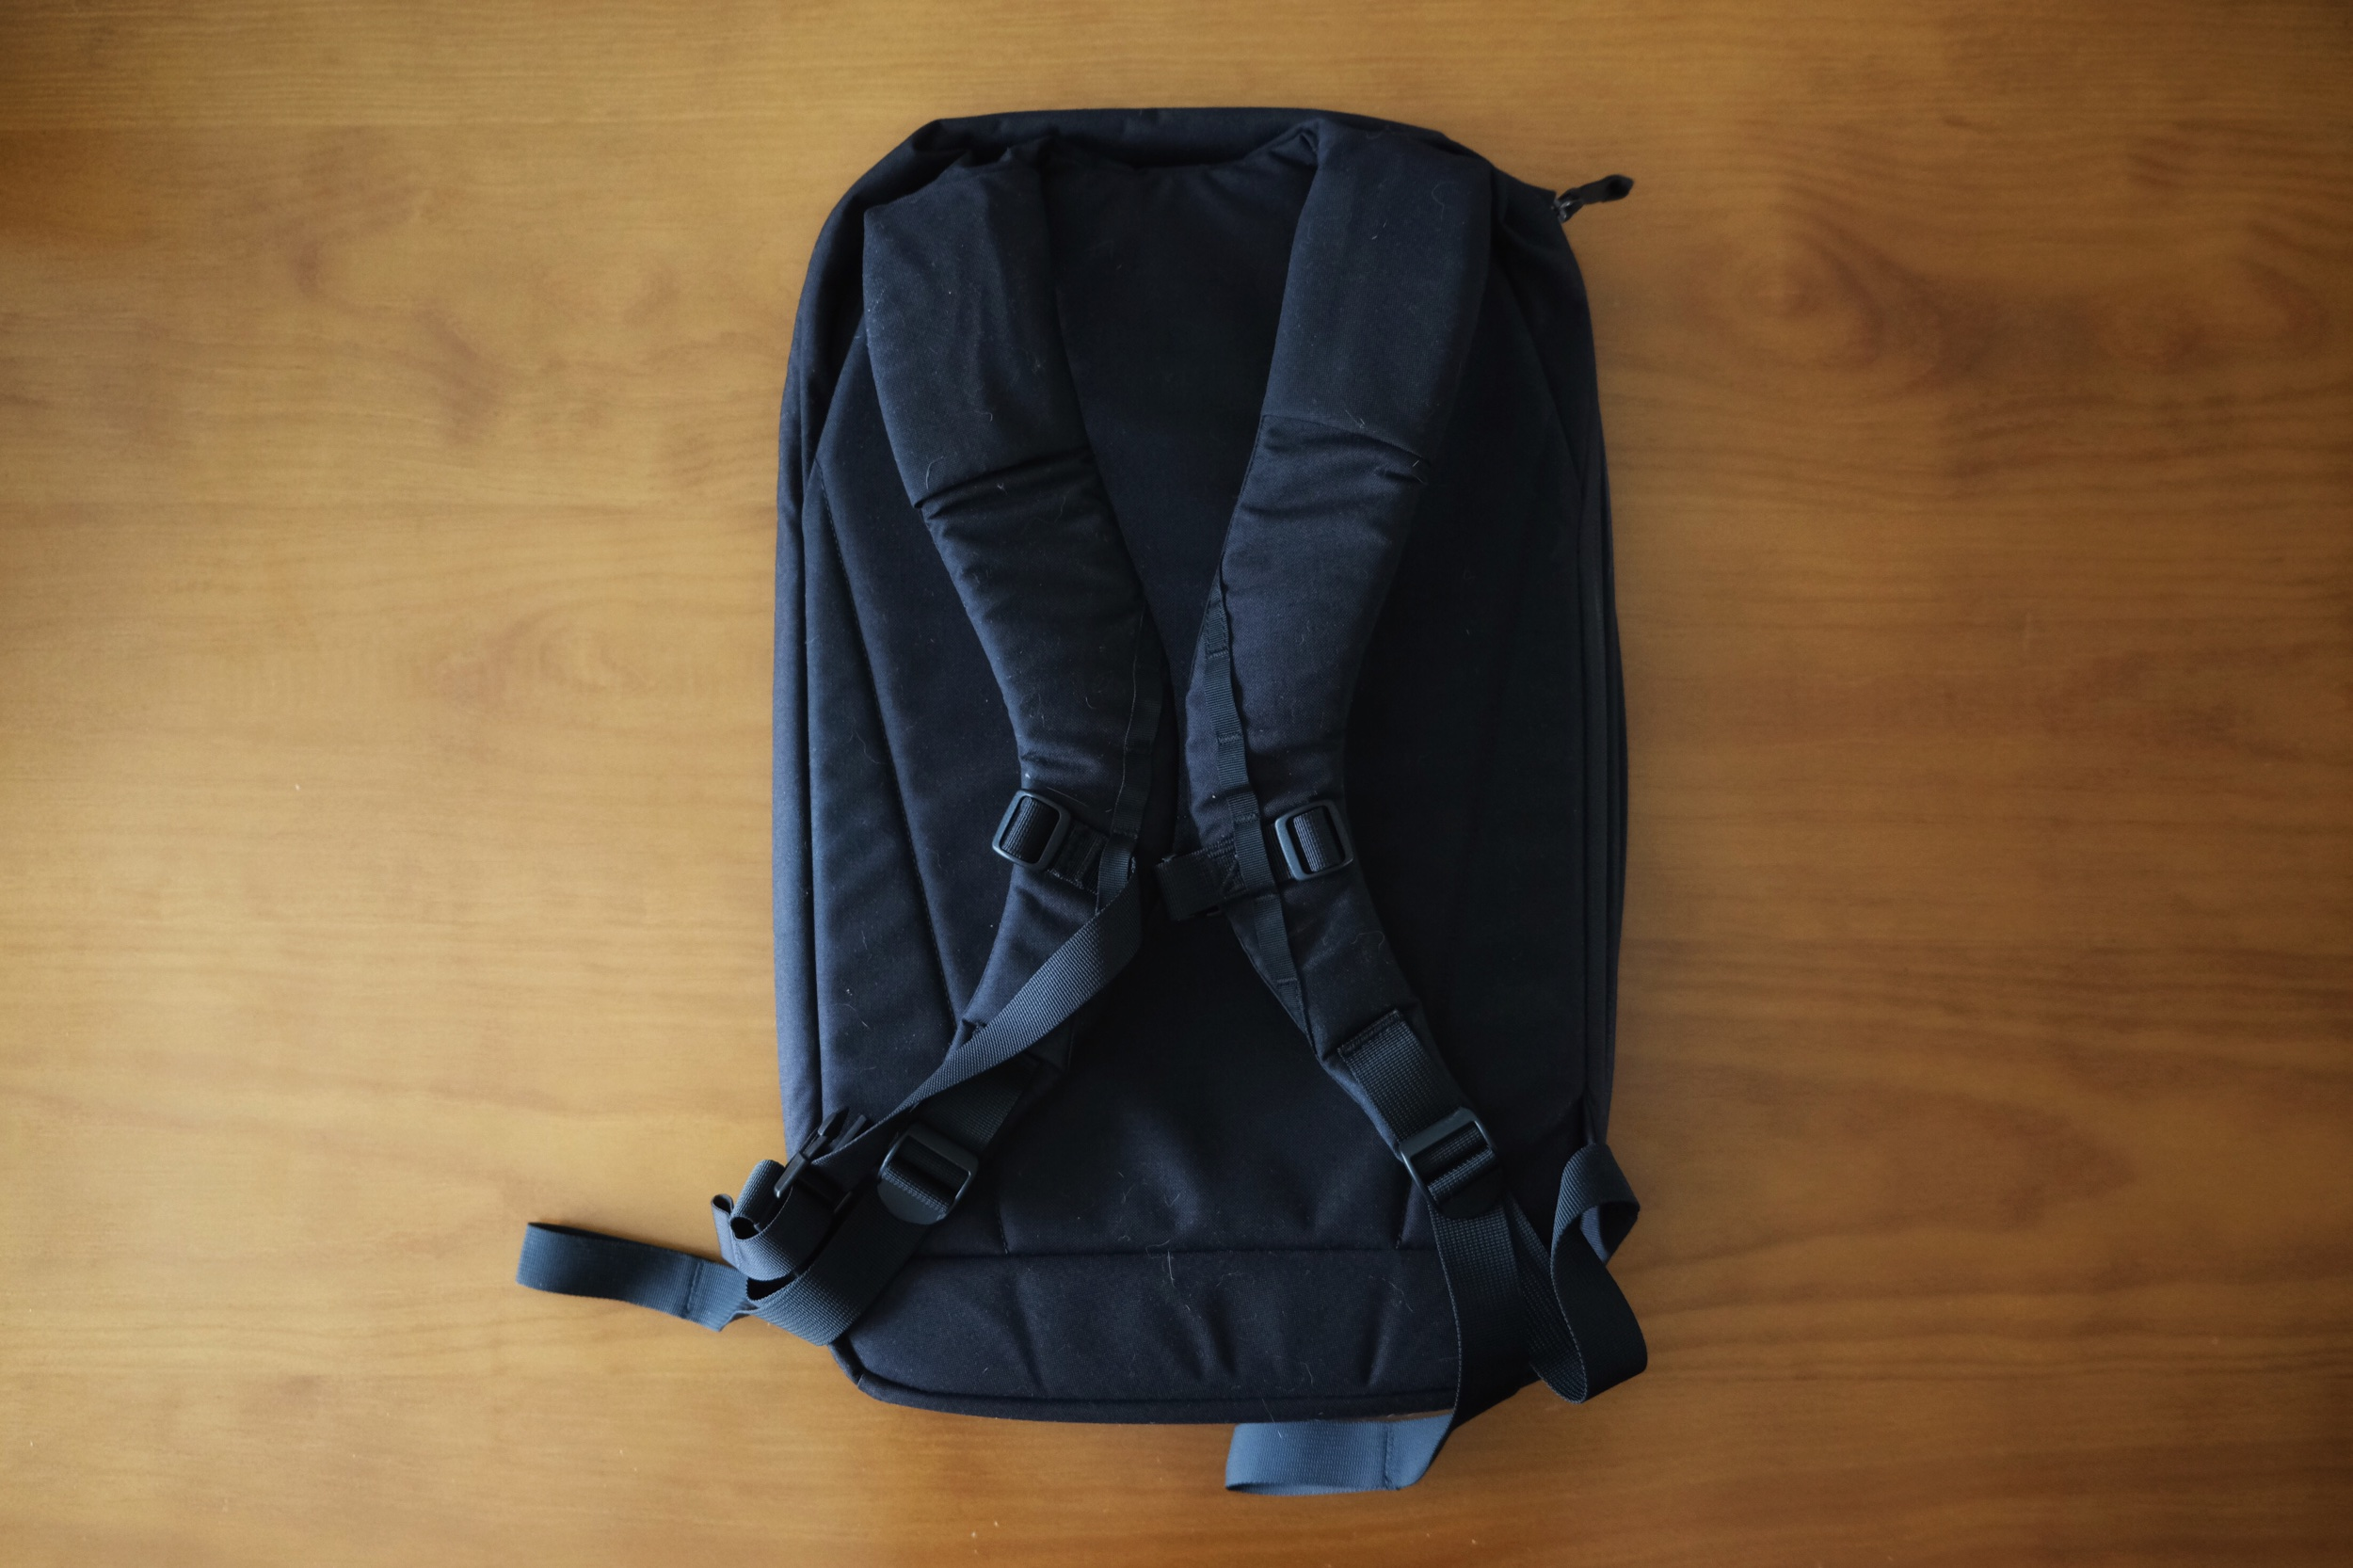 There are two flaps on each shoulder strap. These flaps pass through into the laptop compartment to allow the use of a hydration pack. I have not used this feature.